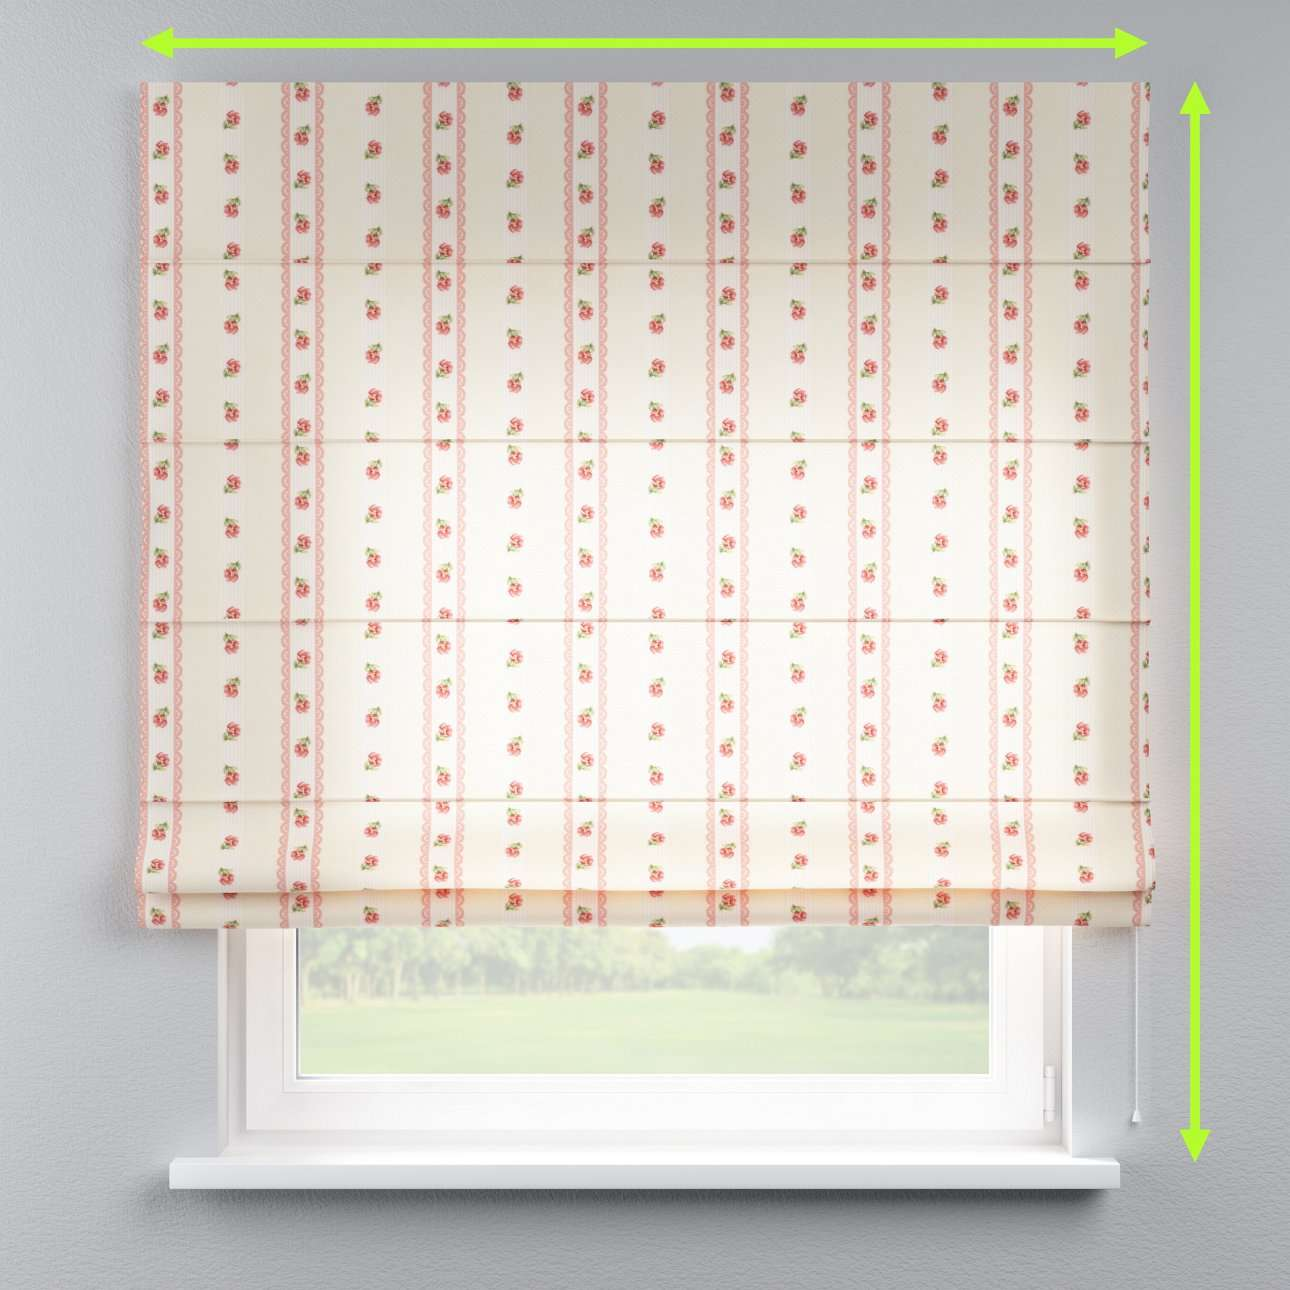 Capri roman blind in collection Ashley, fabric: 137-48